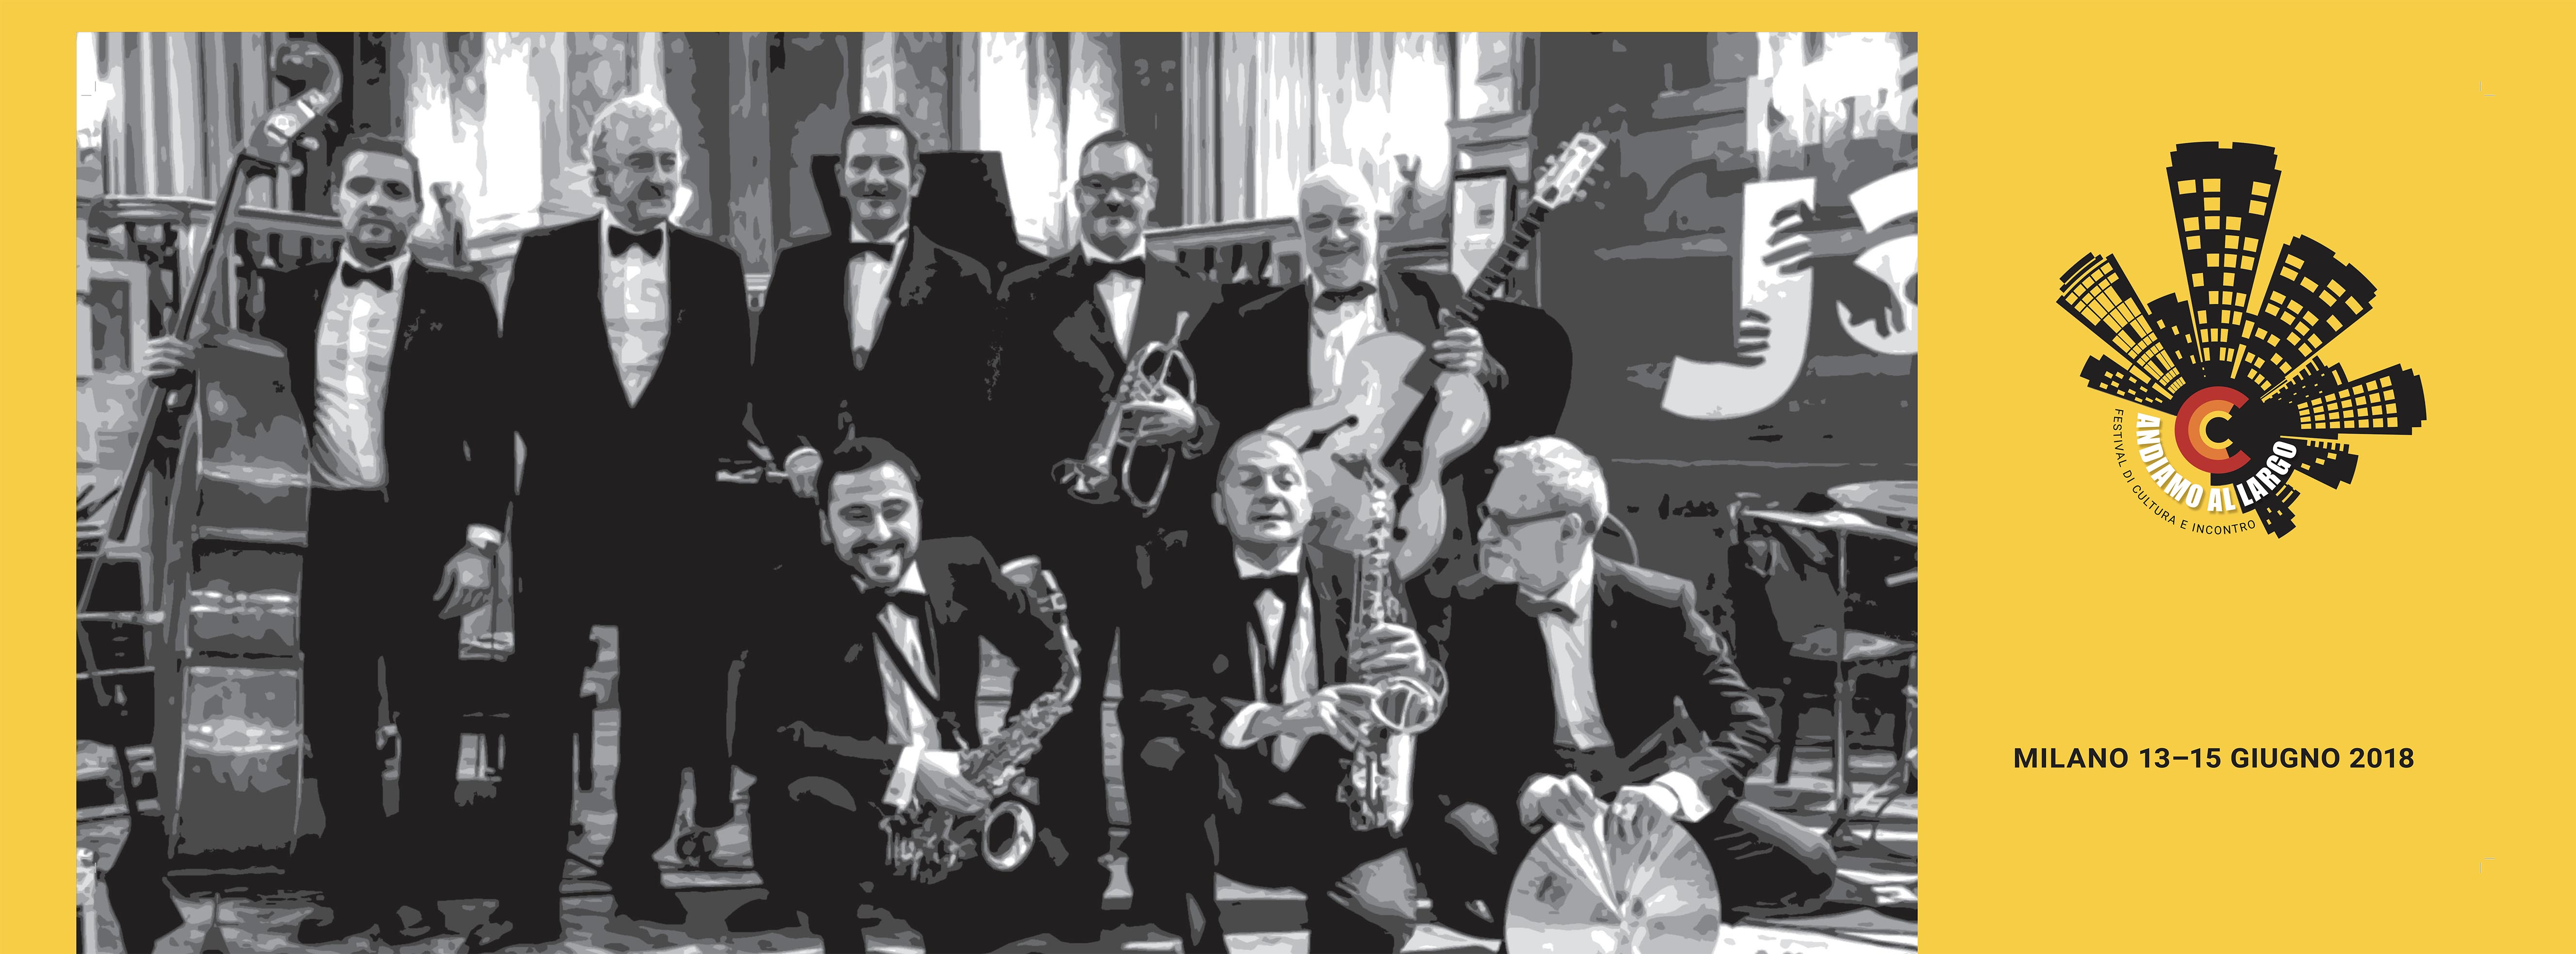 Hot jazz orchestra formato 125x40_tipo B14